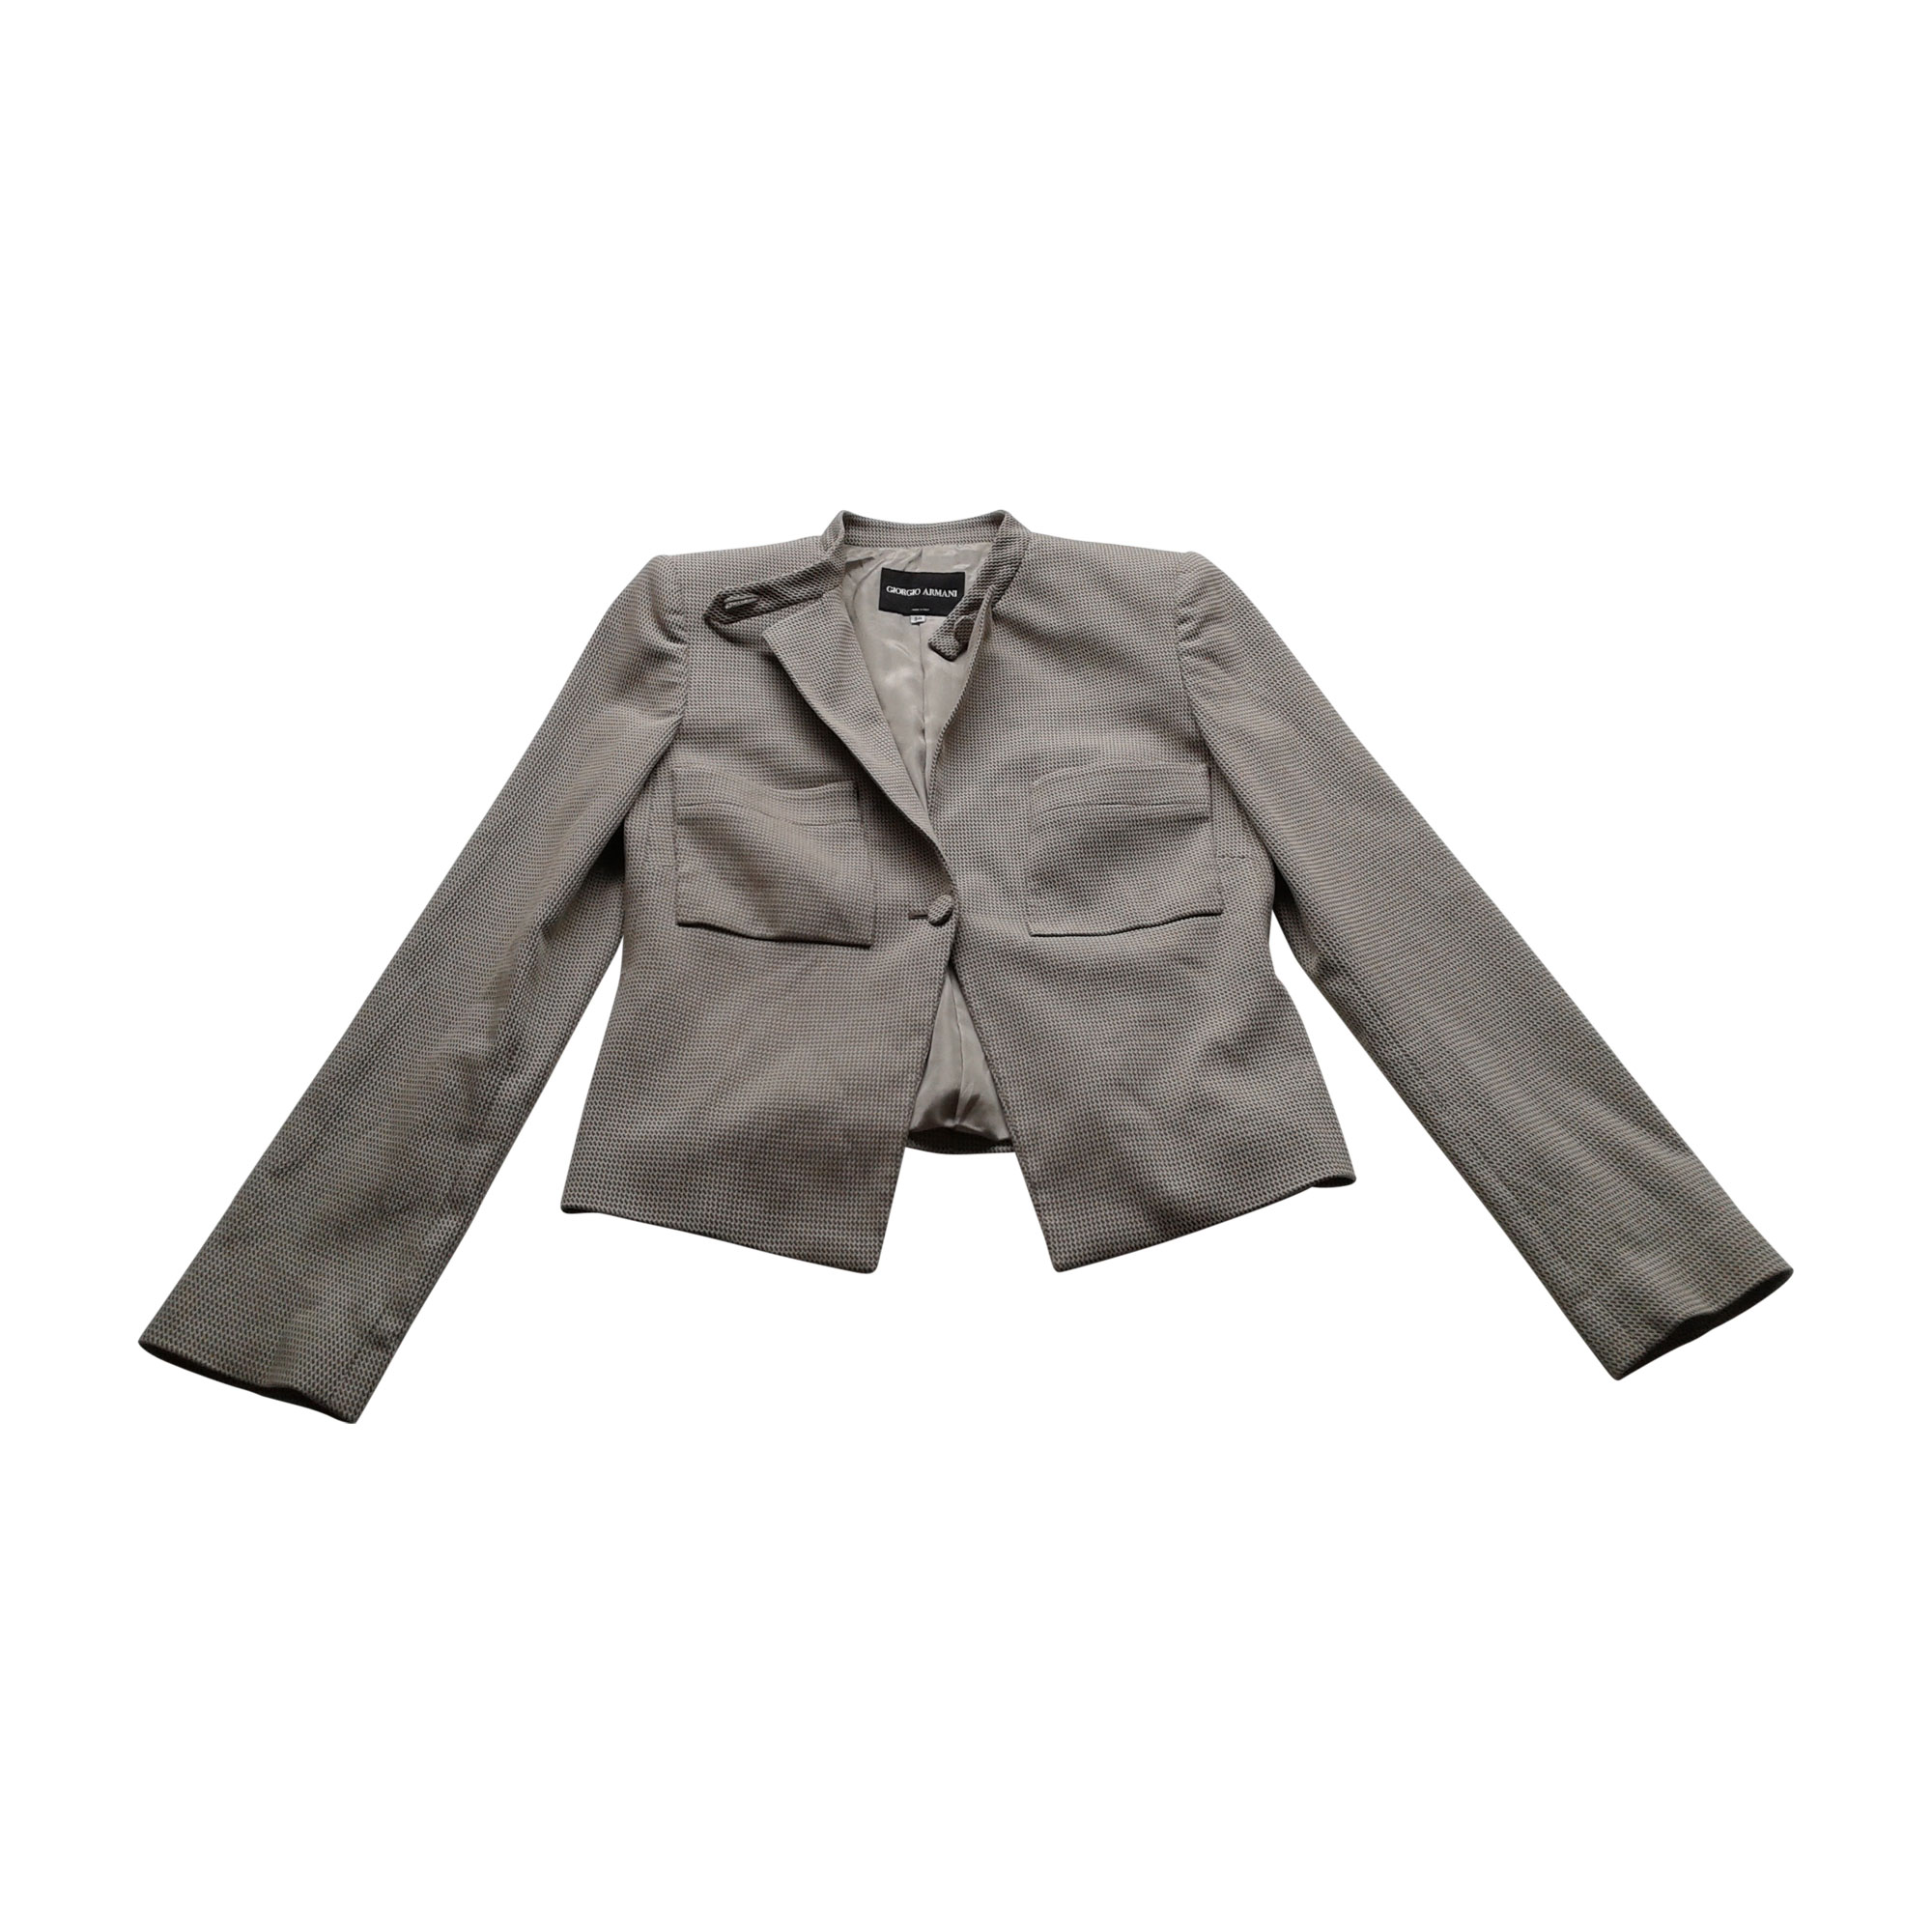 6efc70cf331e Blazer, veste tailleur GIORGIO ARMANI 38 (M, T2) chocolate brown and ...